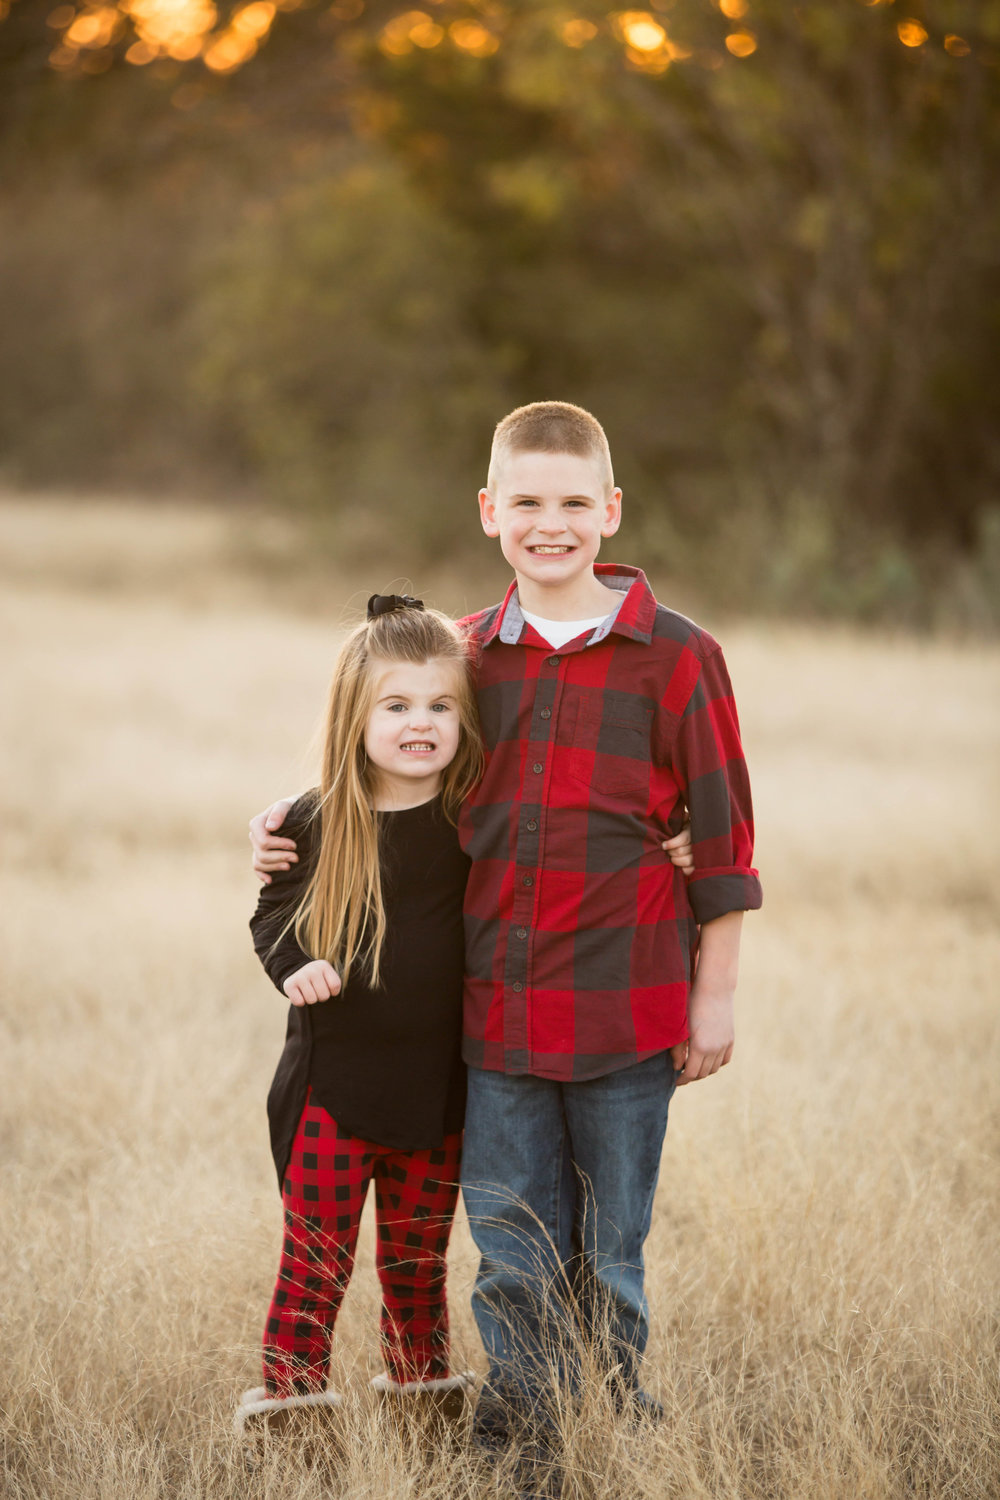 Marble_Falls_Sternad_Family_Photographer_Jenna_Petty_04.jpg